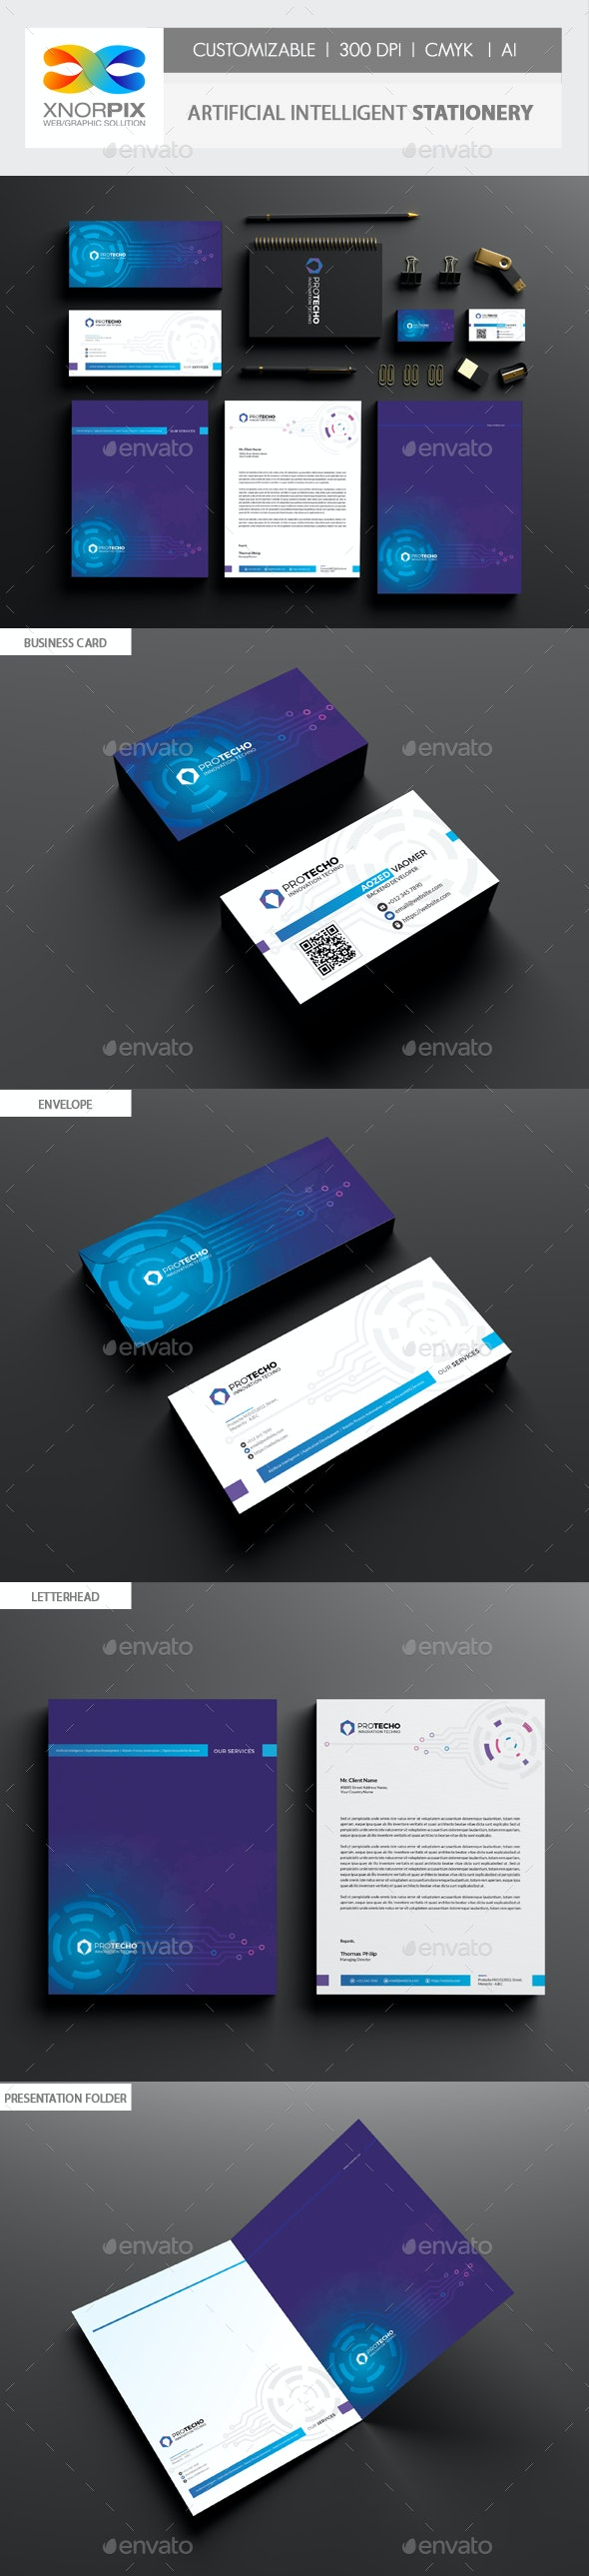 Artificial Intelligent Stationery - Stationery Print Templates